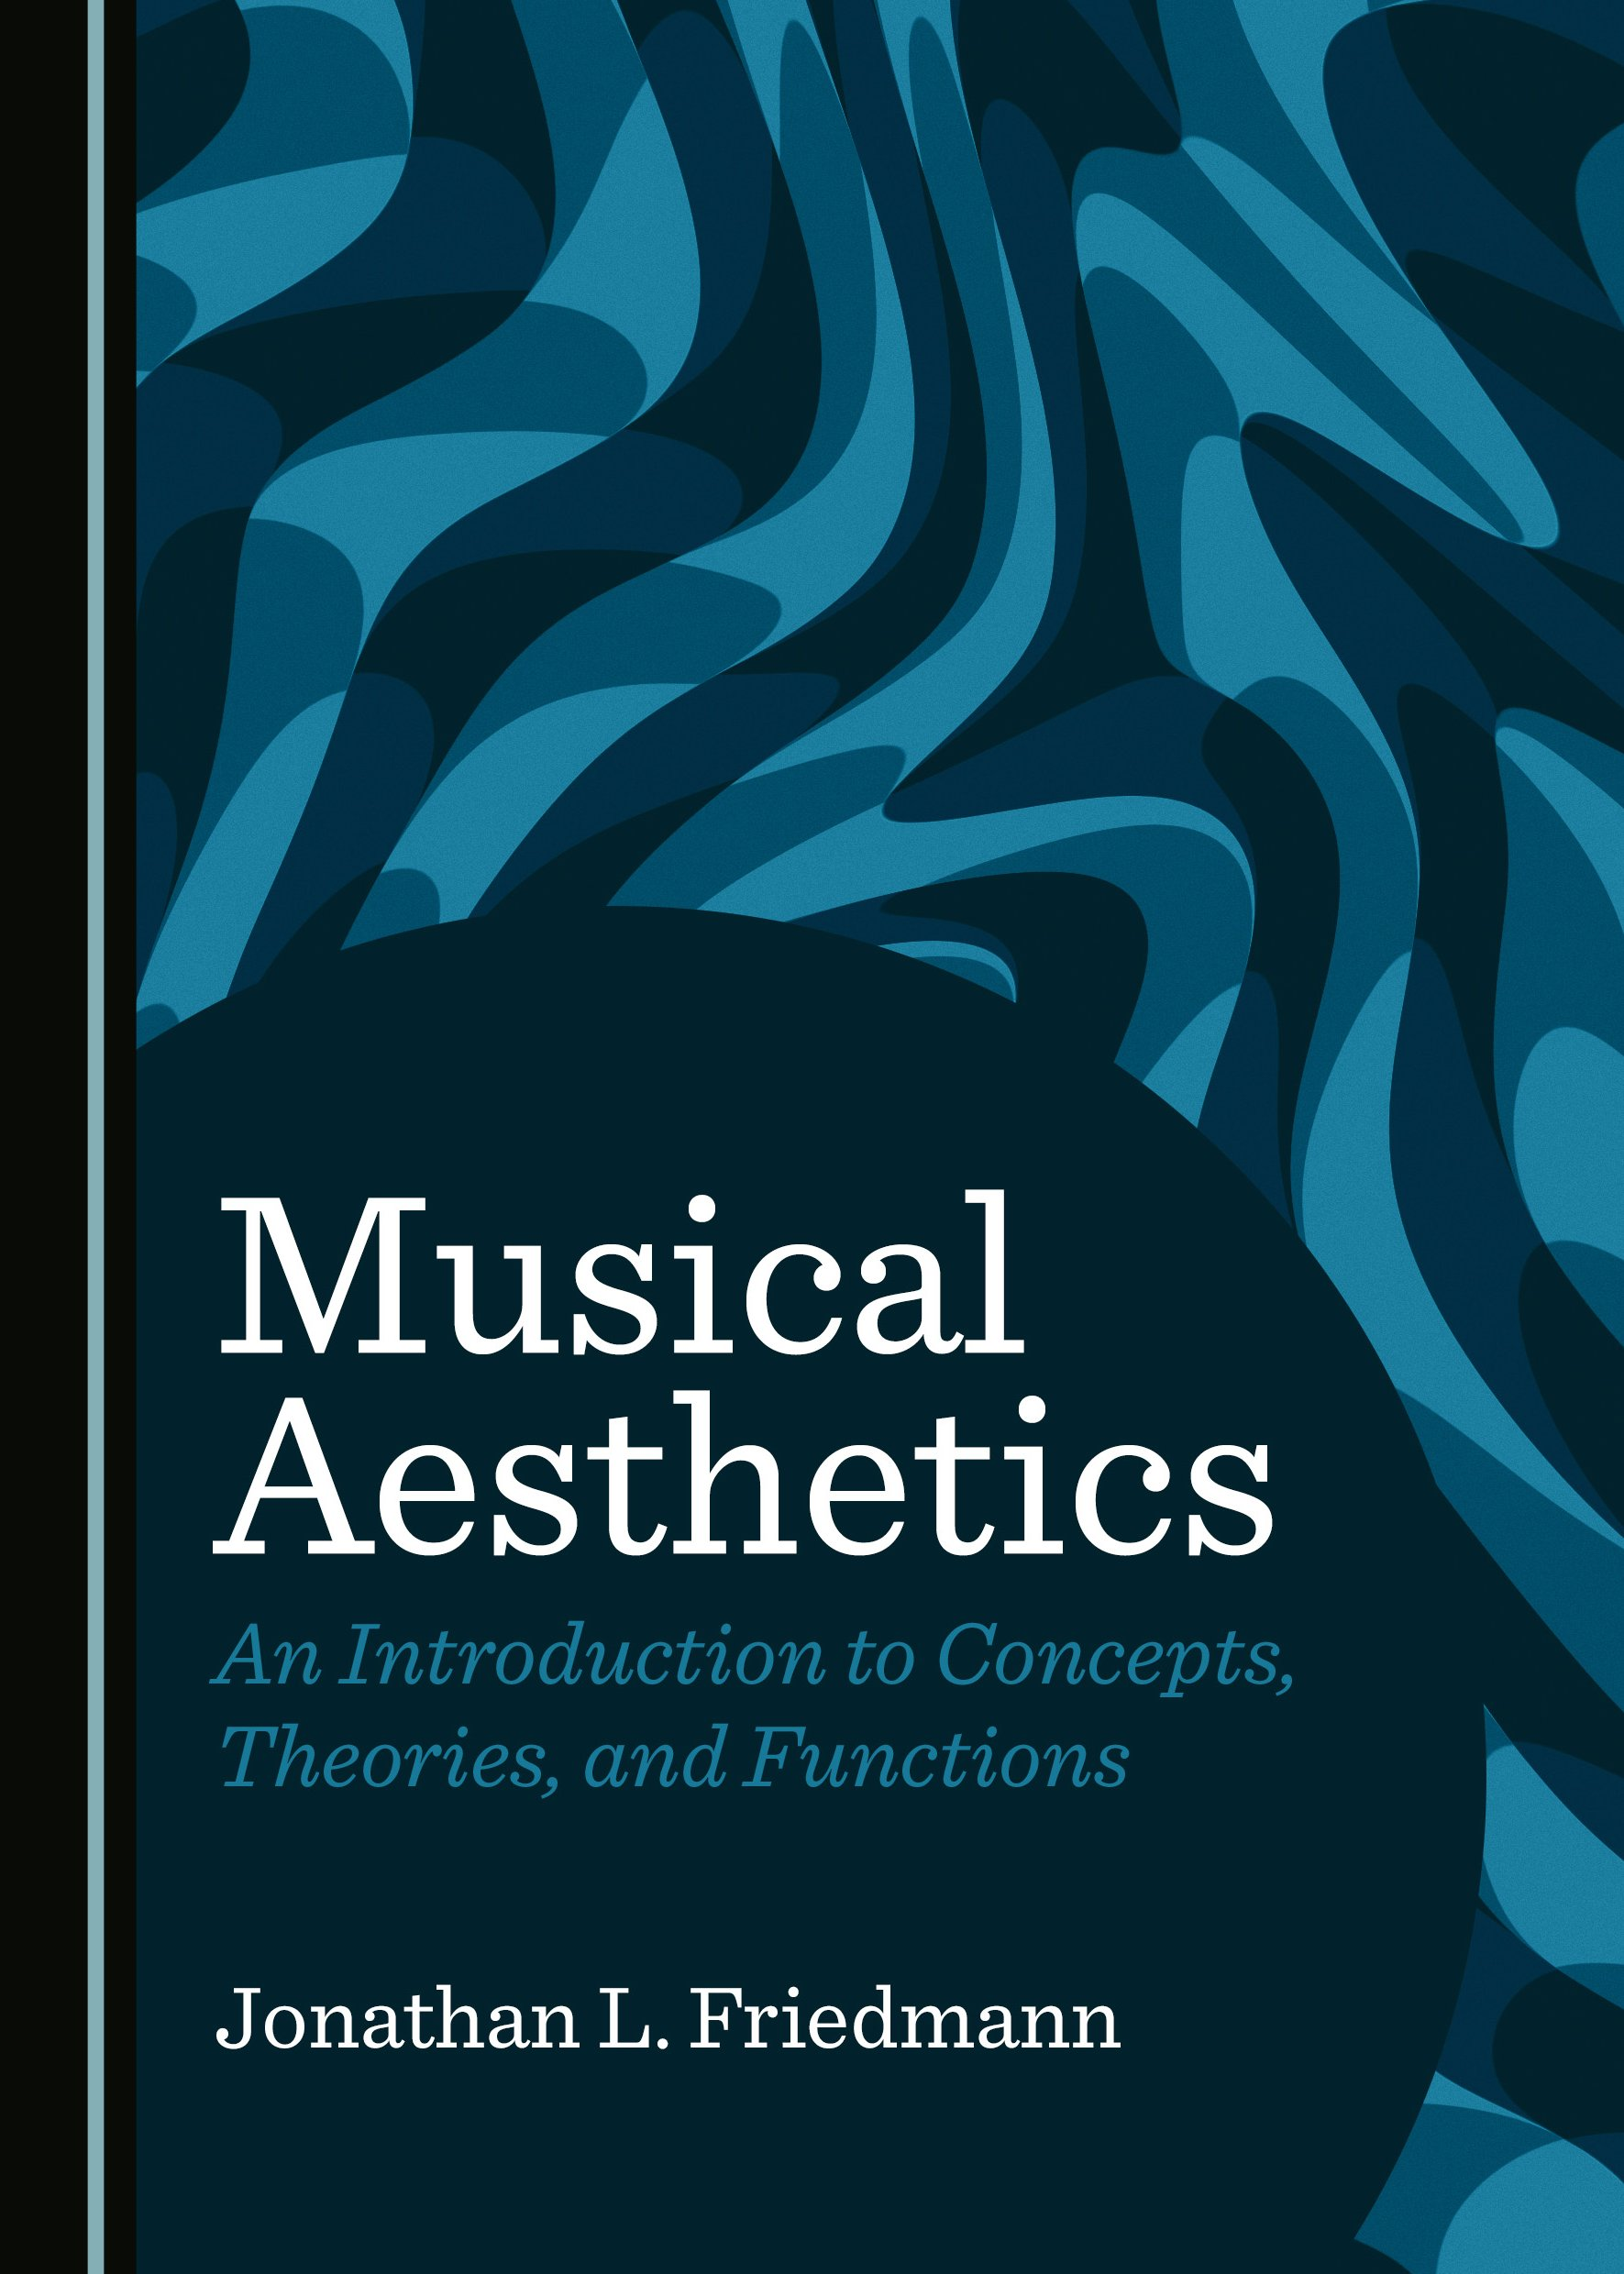 Musical Aesthetics: An Introduction to Concepts, Theories, and Functions